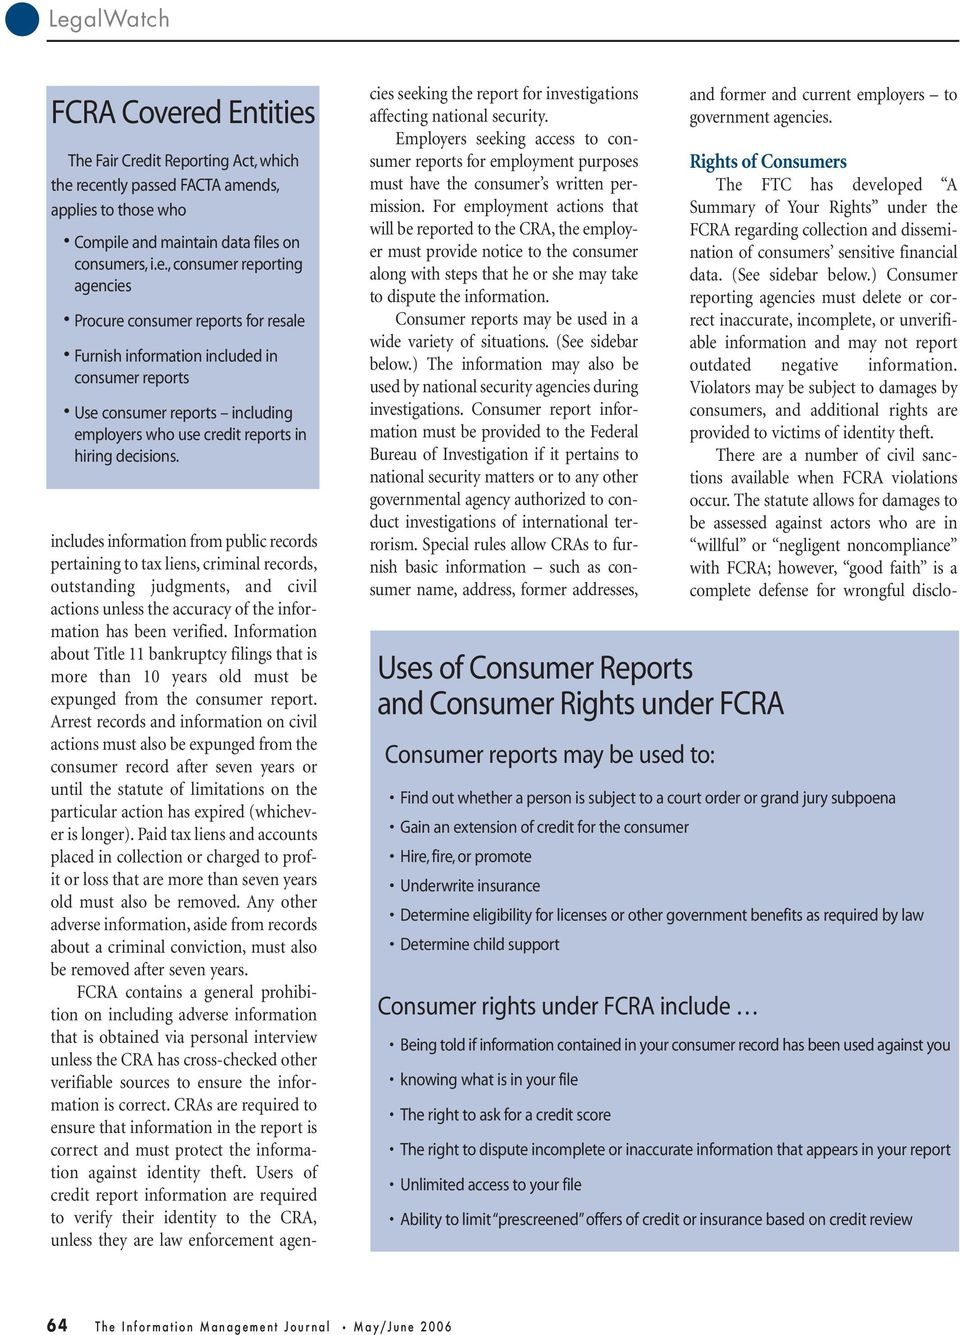 consumer reports for resale Furnish information included in consumer reports Use consumer reports including employers who use credit reports in hiring decisions.